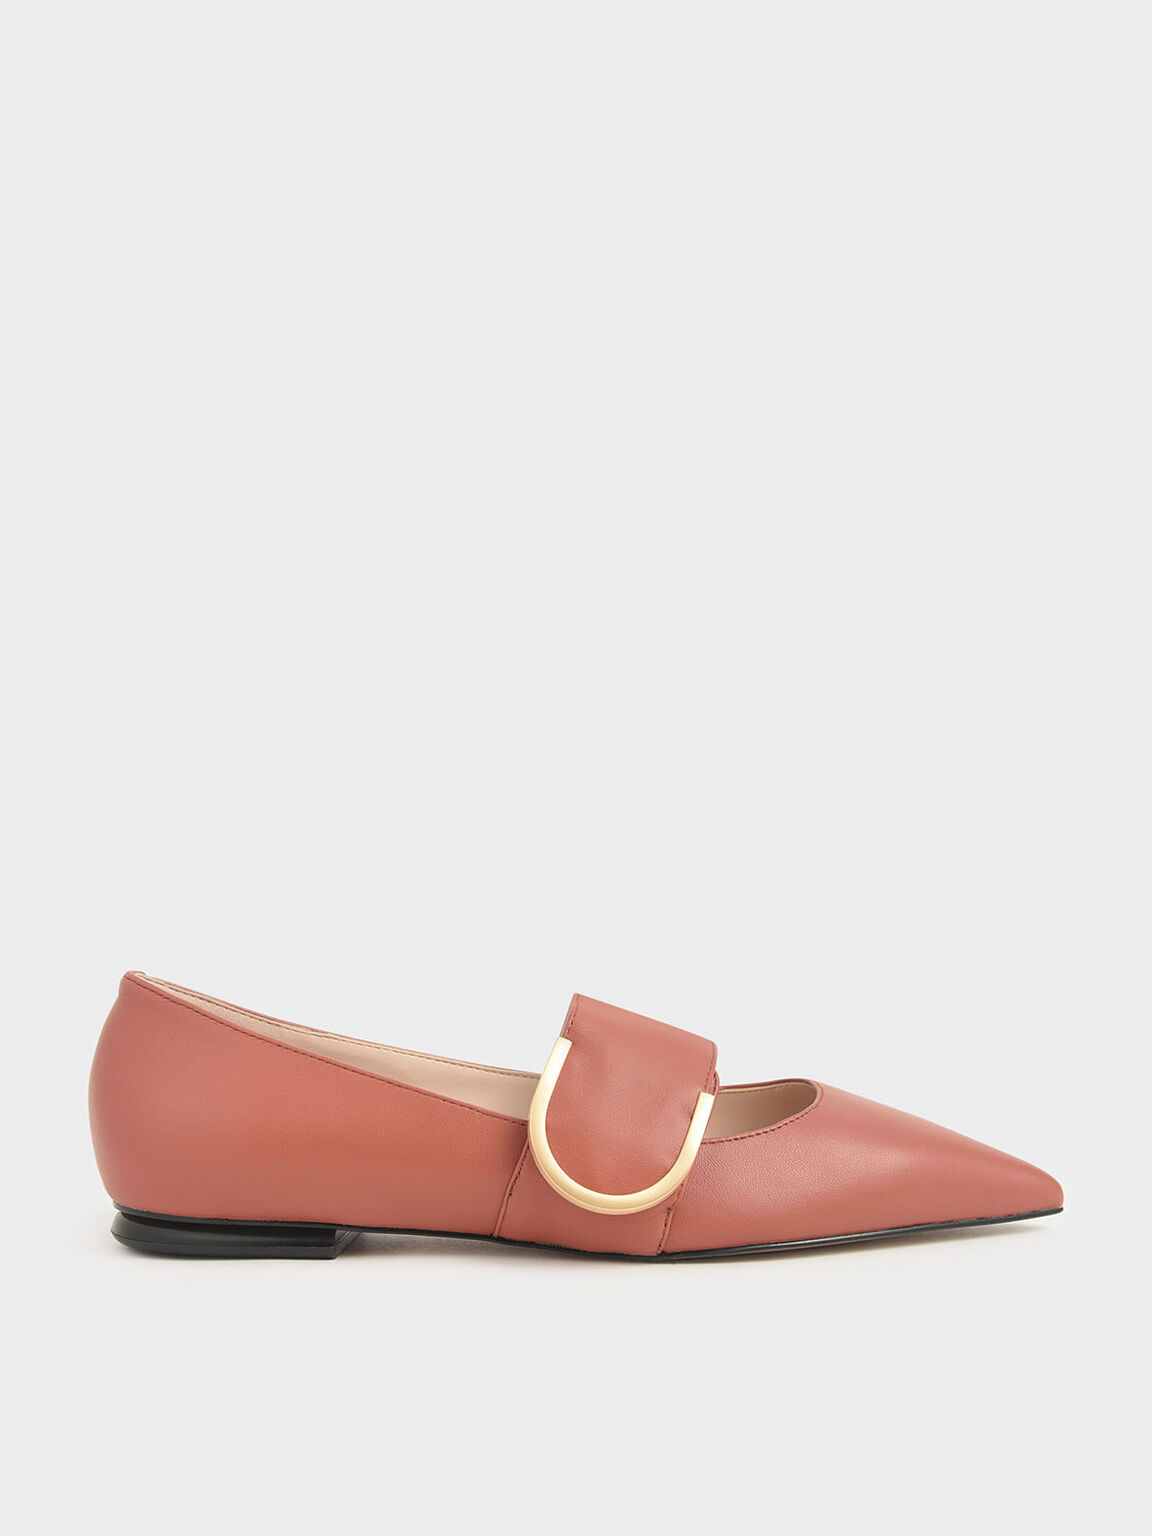 Leather Mary Jane Flats, Brick, hi-res